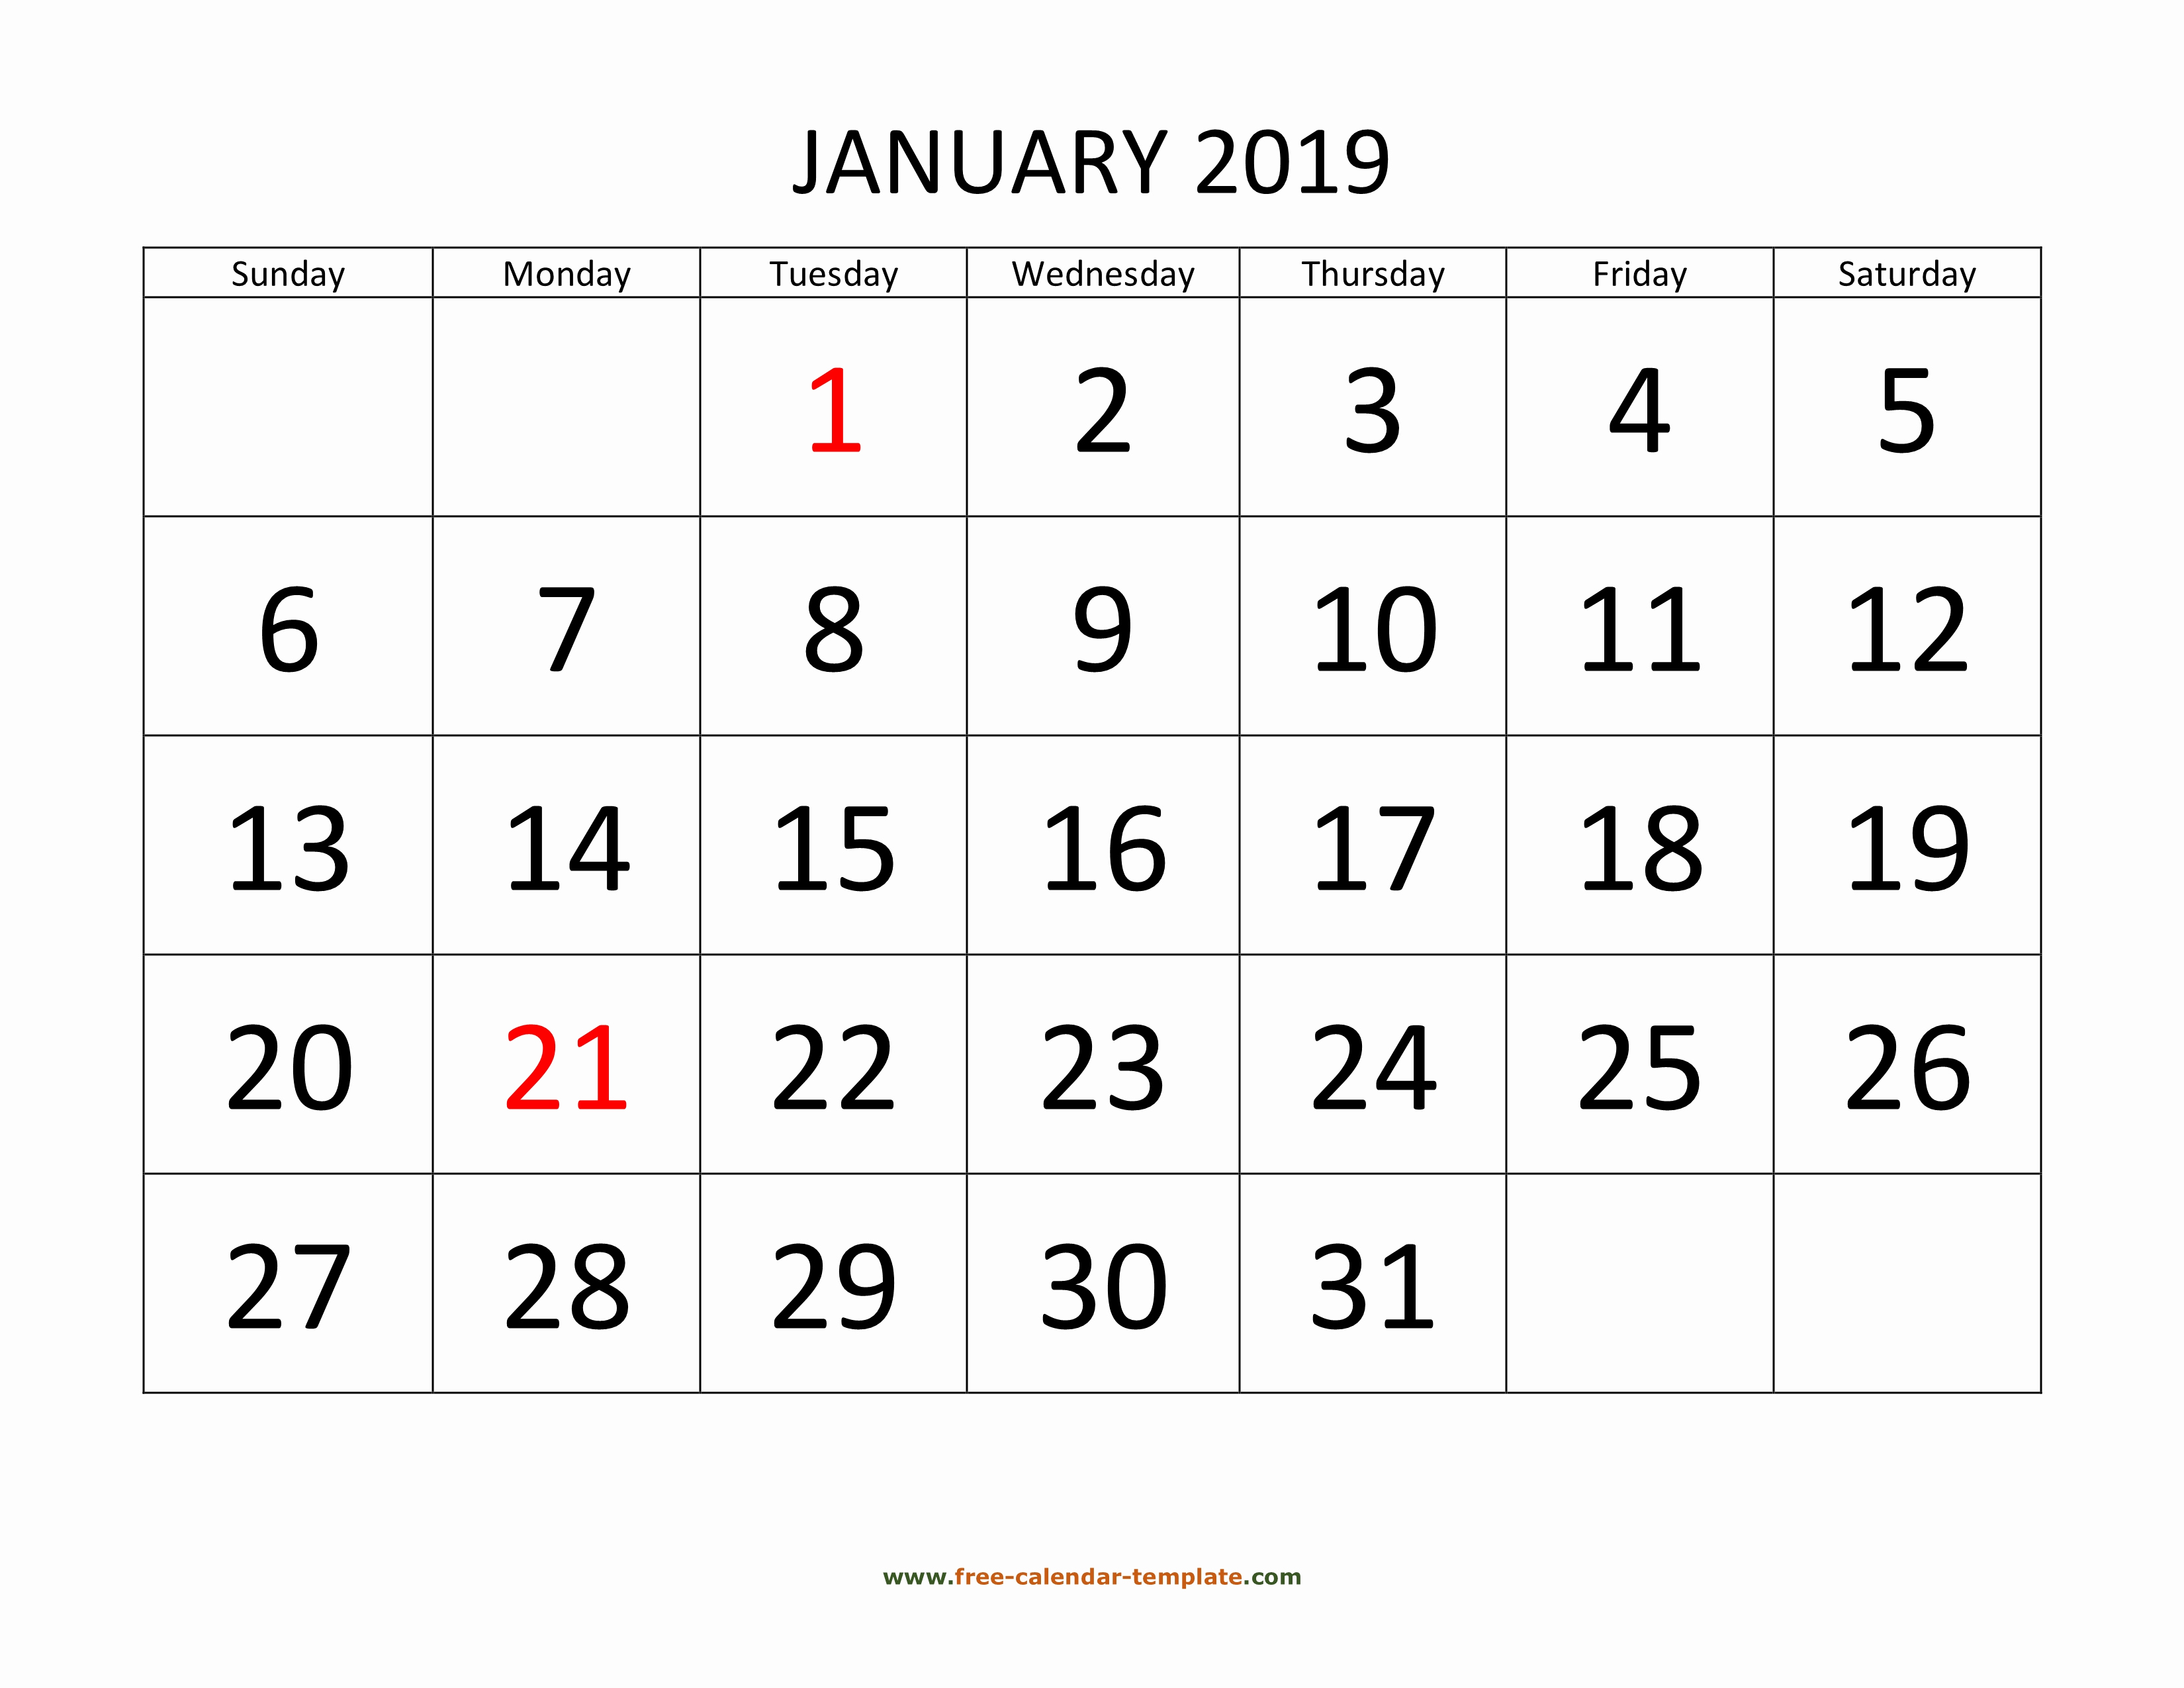 Monthly Calendar Template 2019 Awesome Printable Monthly Calendar 2019